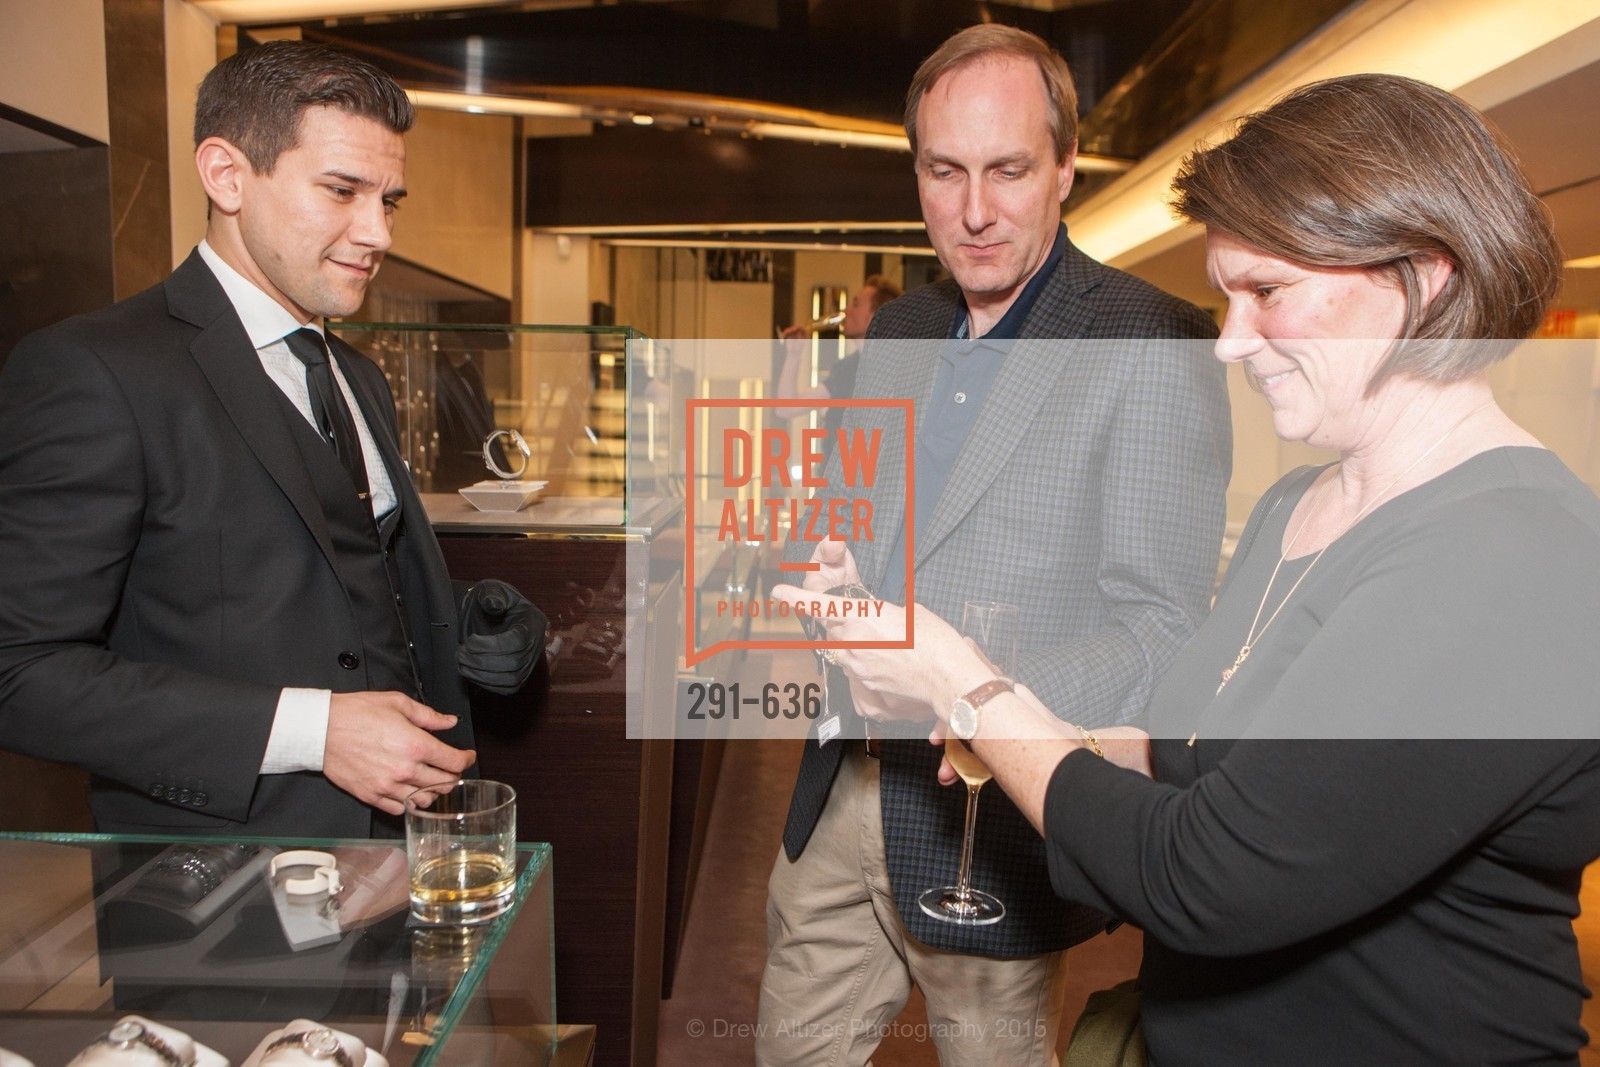 Salvatore Scotto, Jared Wilson, Melanie Wilson, Bulgari San Francisco Presents WINE, WHISKEY & WATCHES, Bulgari San Francisco. 200 Stockton Street, December 8th, 2015,Drew Altizer, Drew Altizer Photography, full-service event agency, private events, San Francisco photographer, photographer California